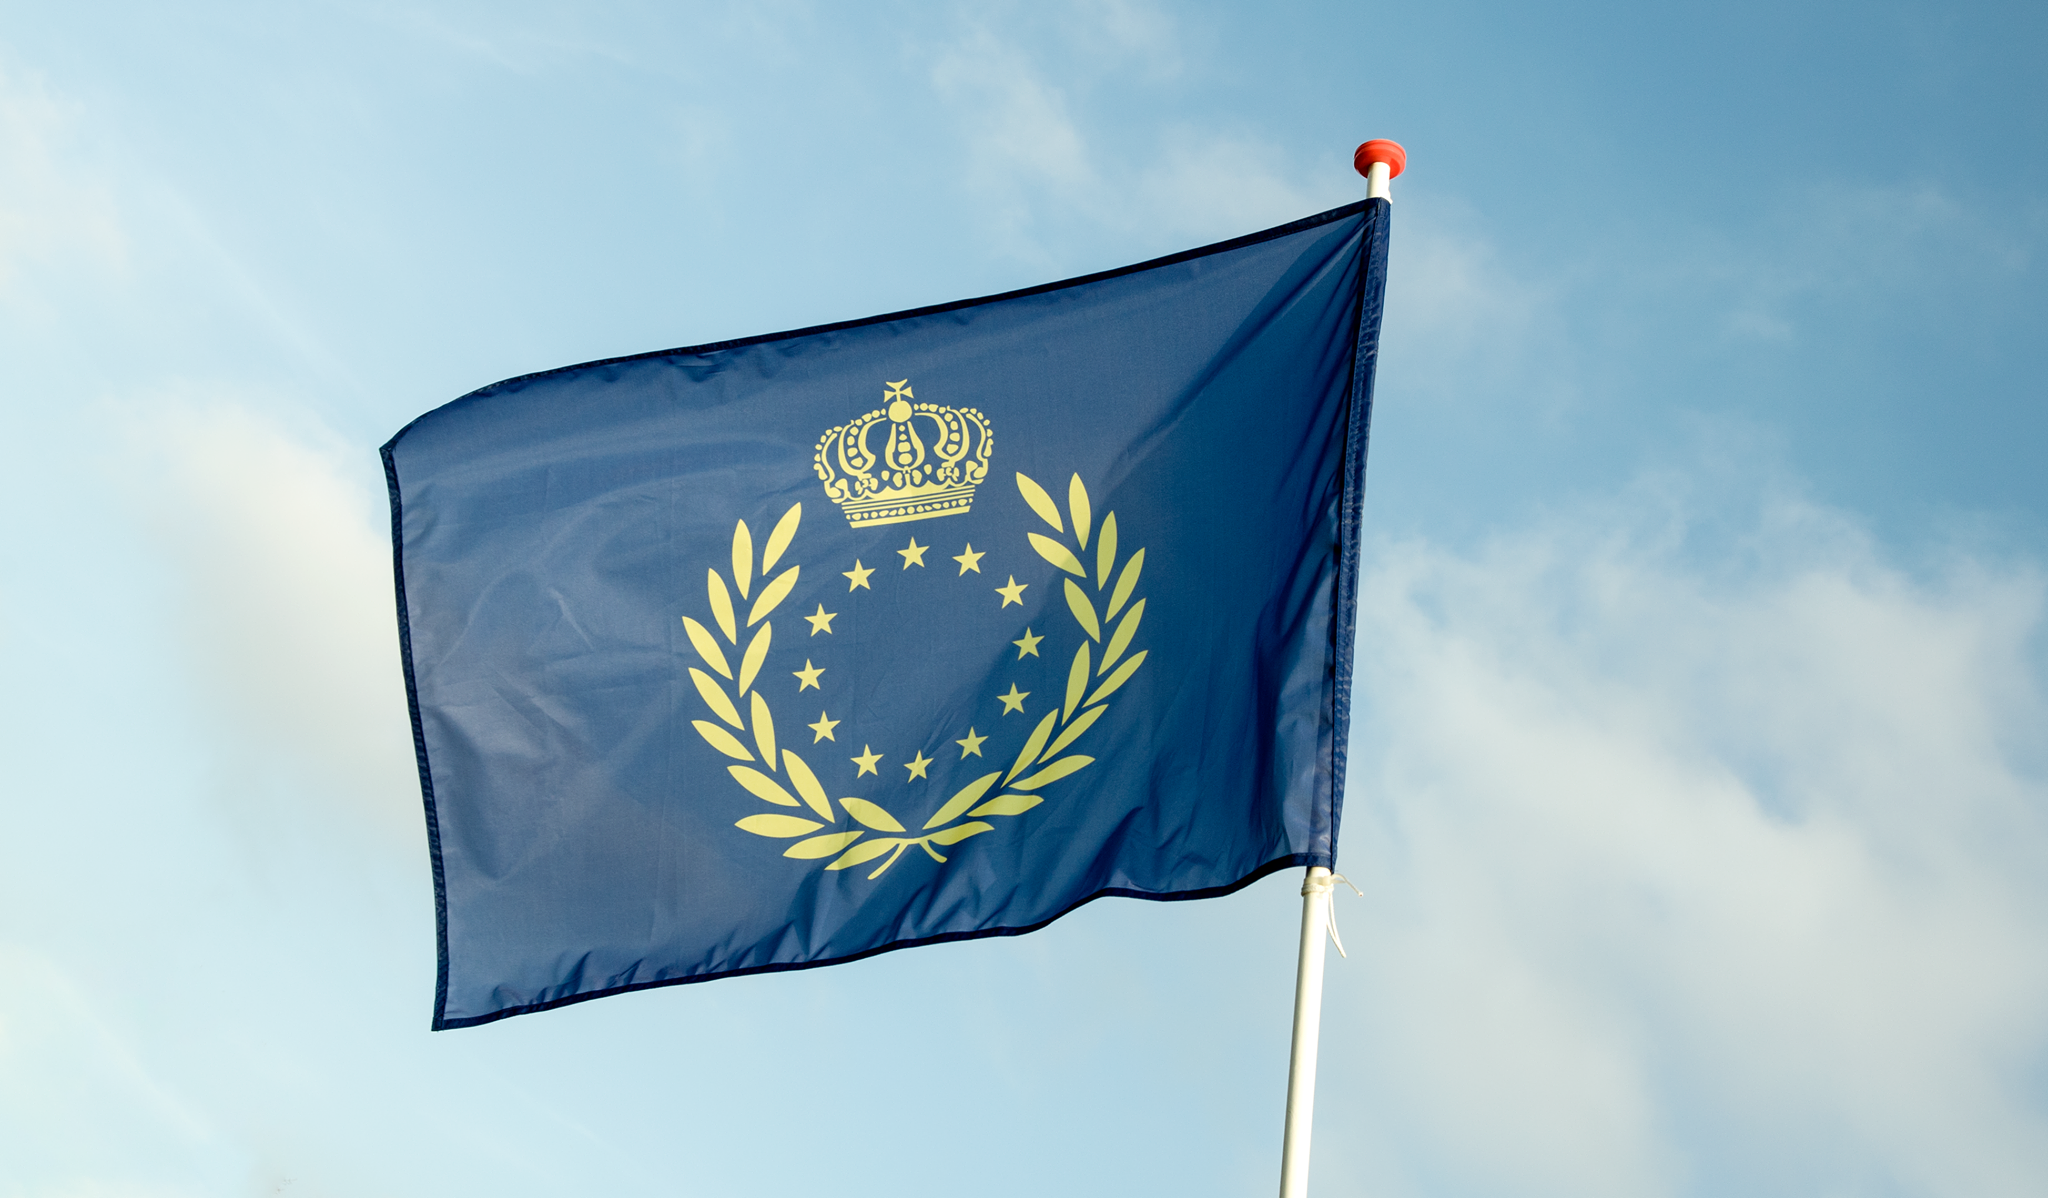 The gold and blue banner of the Pan-European Movement waving in the serene European skies